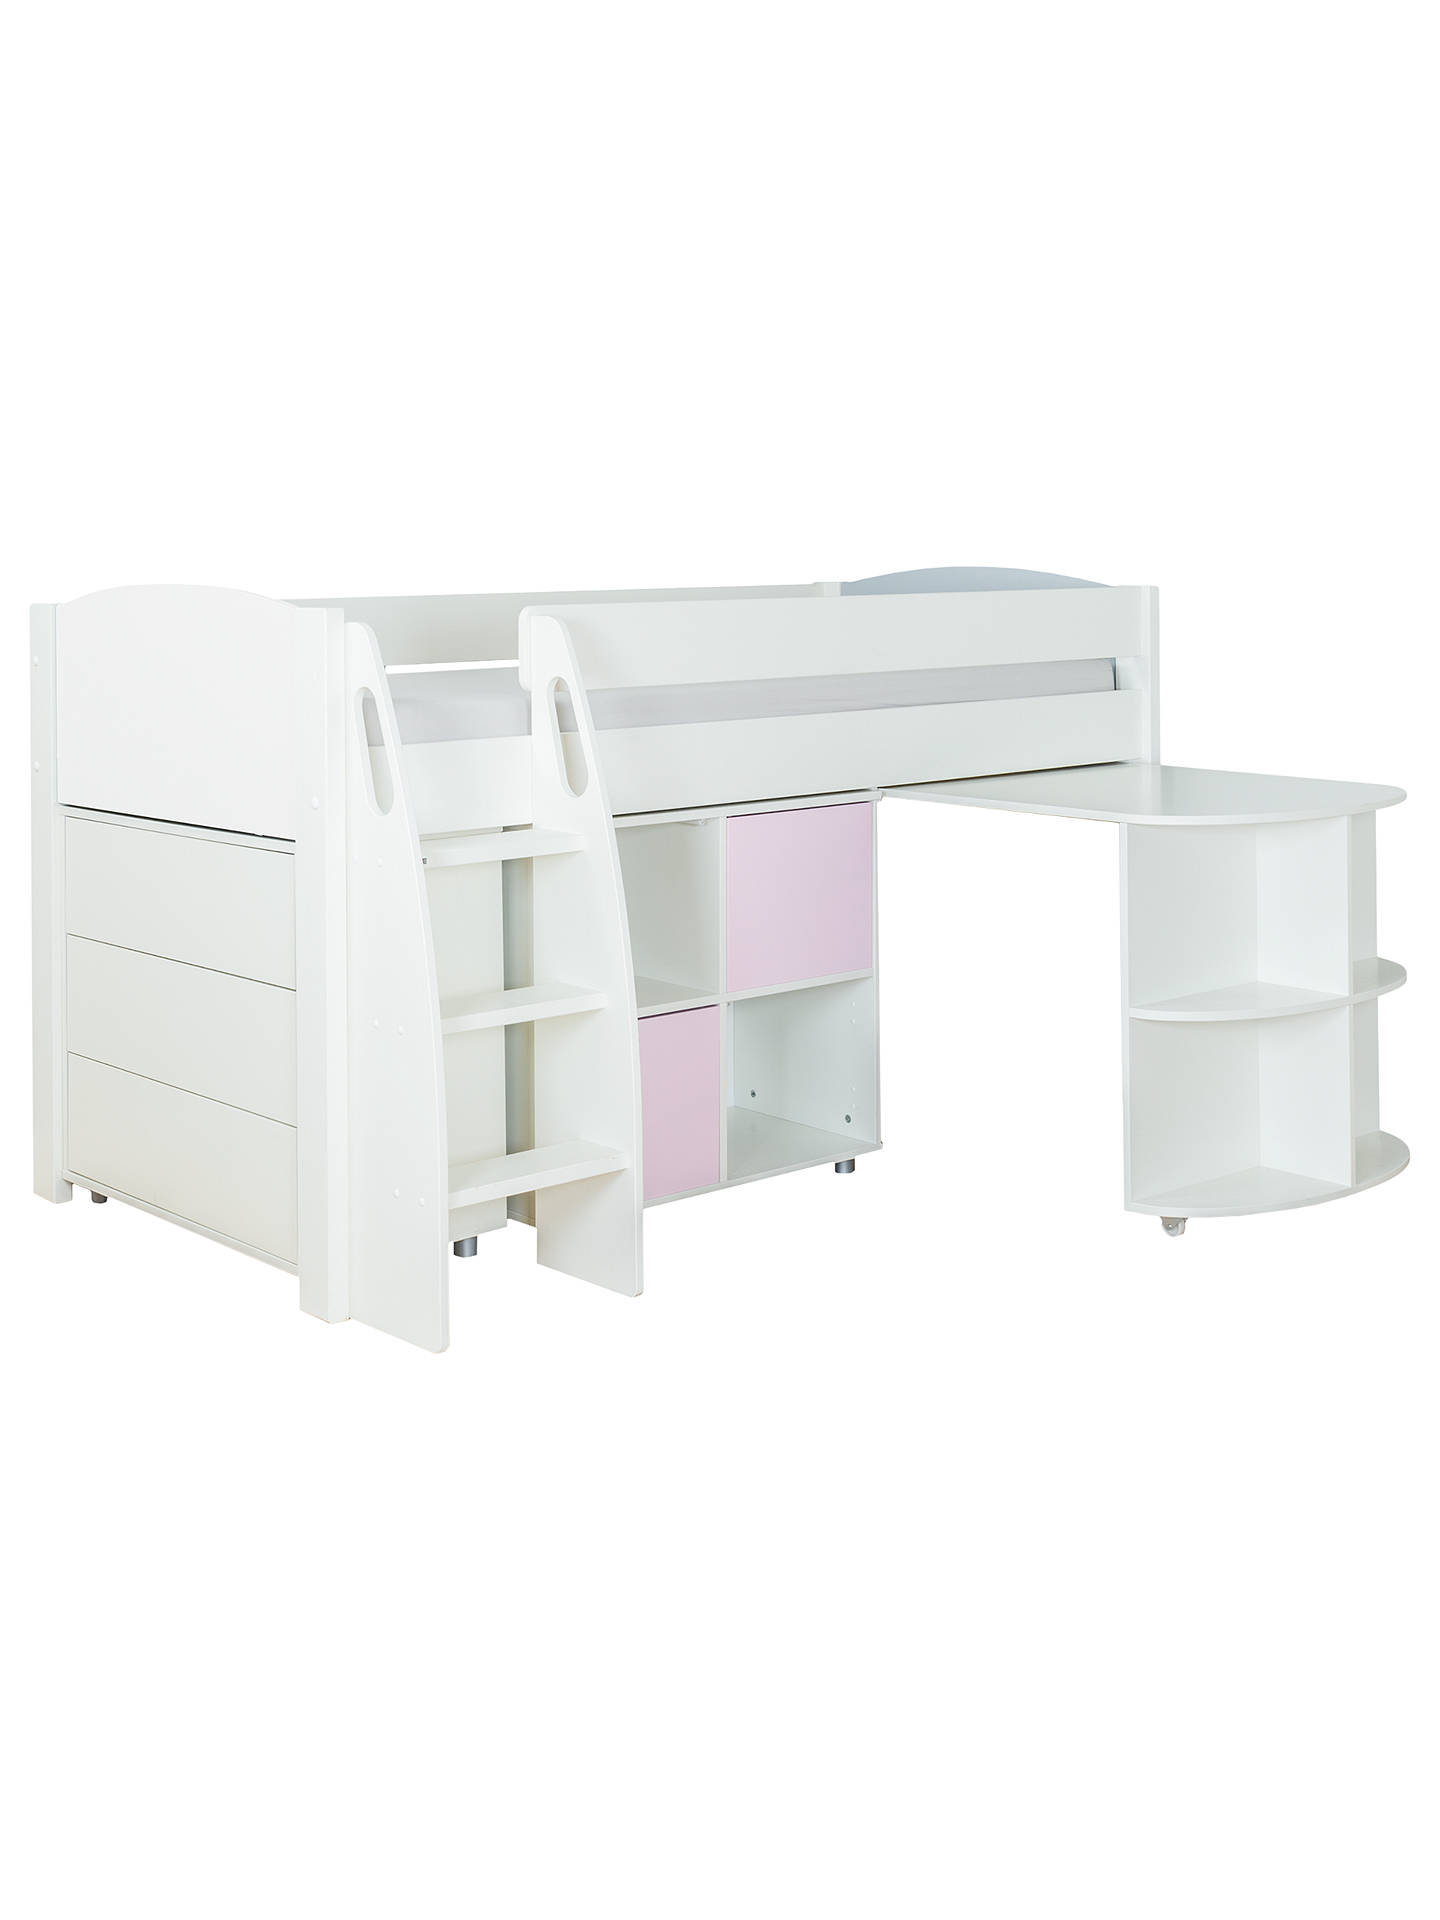 BuyStompa Uno S Plus Mid-Sleeper with Pull-Out Desk, 3 Drawer Chest and 2 Door Cube Unit, White/Pink Online at johnlewis.com